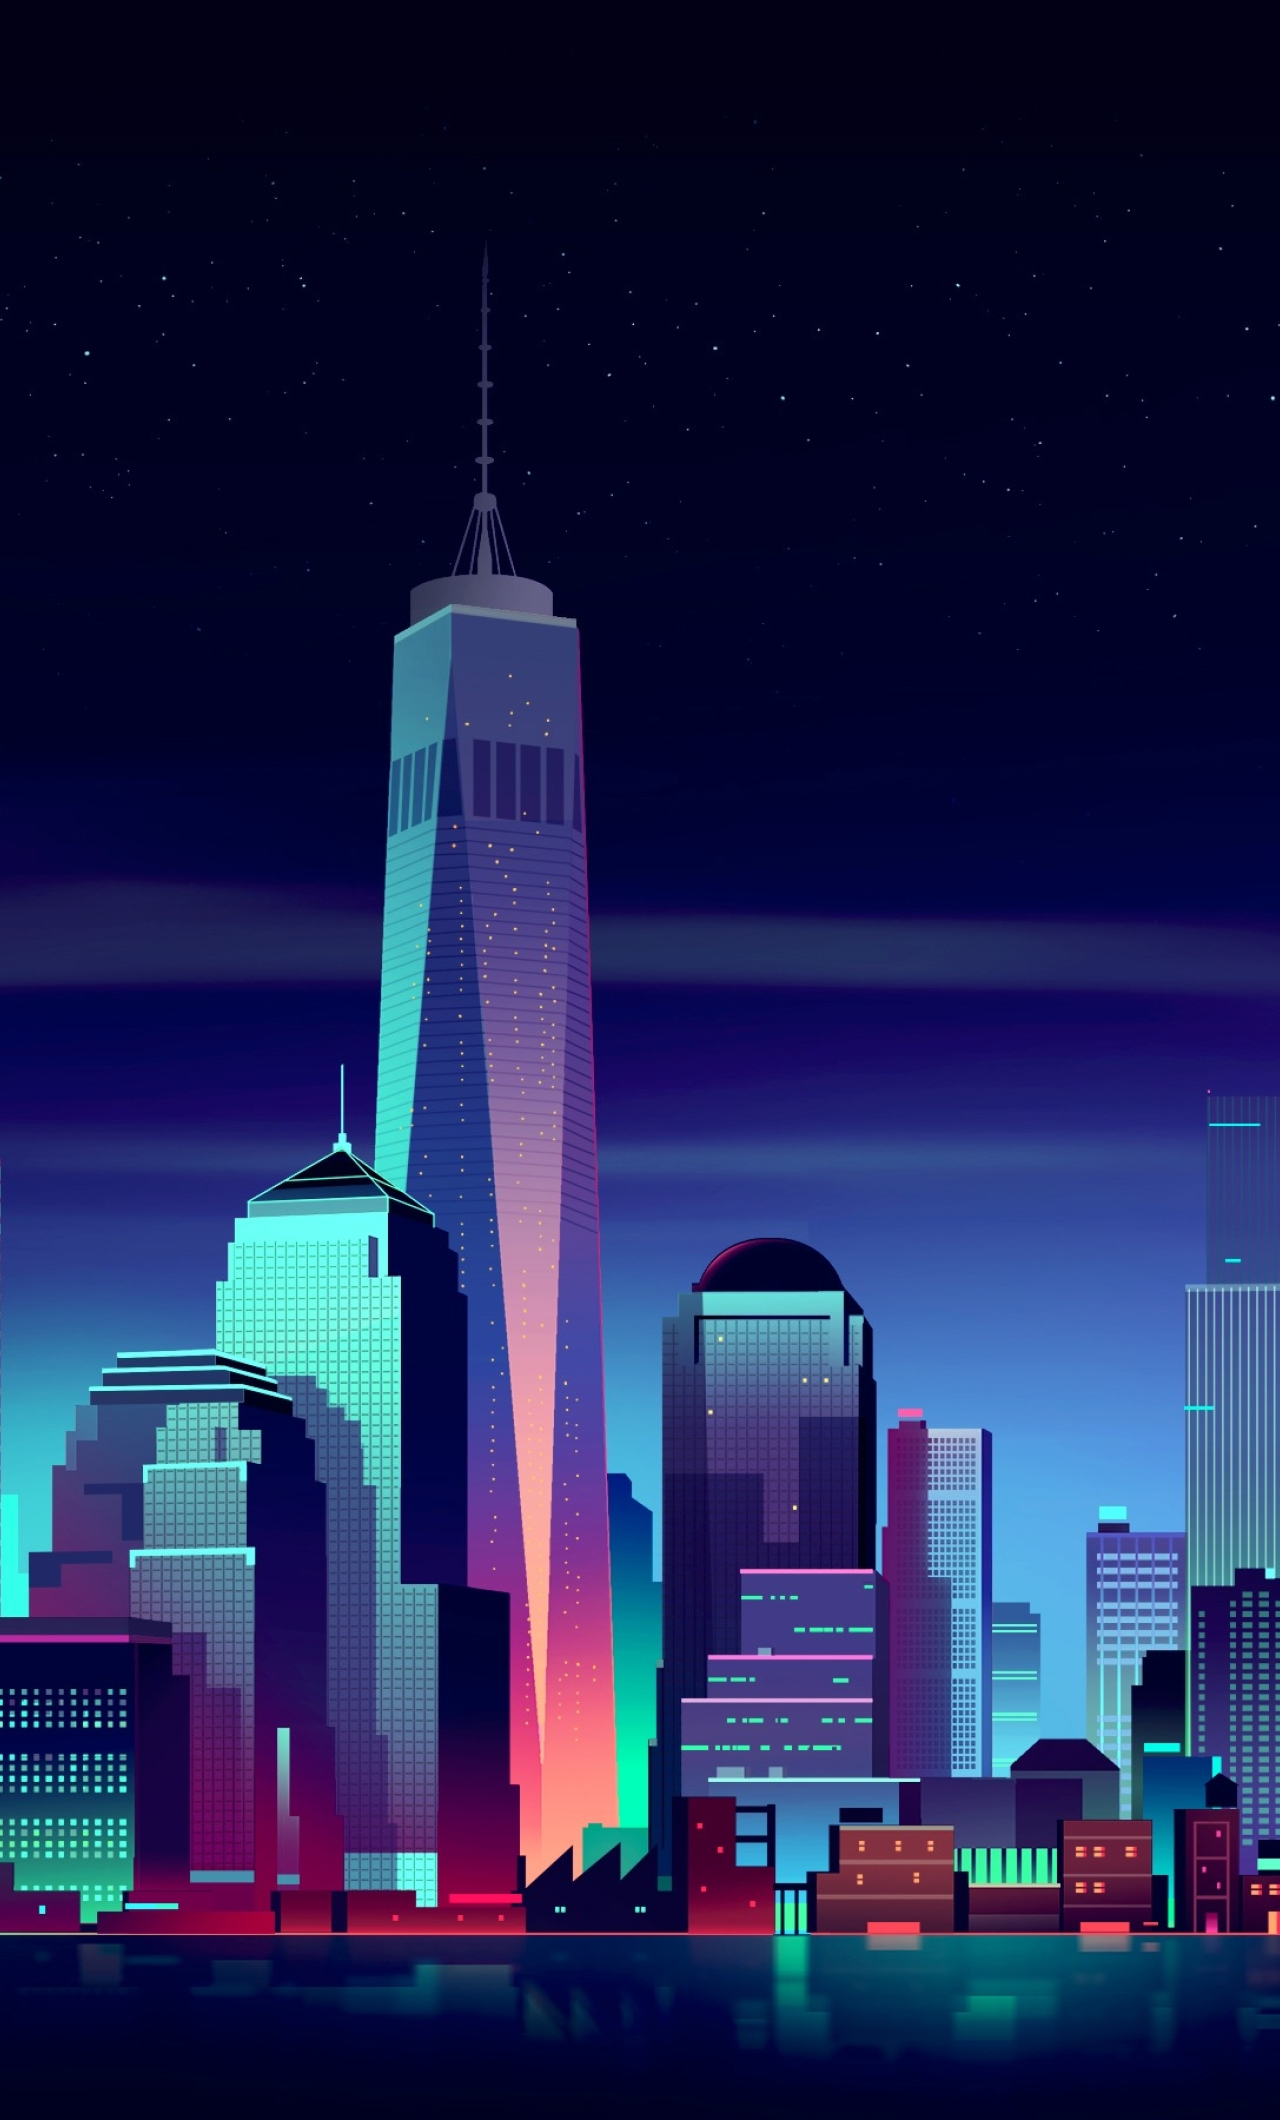 Nyc Minimalist Full Hd 2k Wallpaper